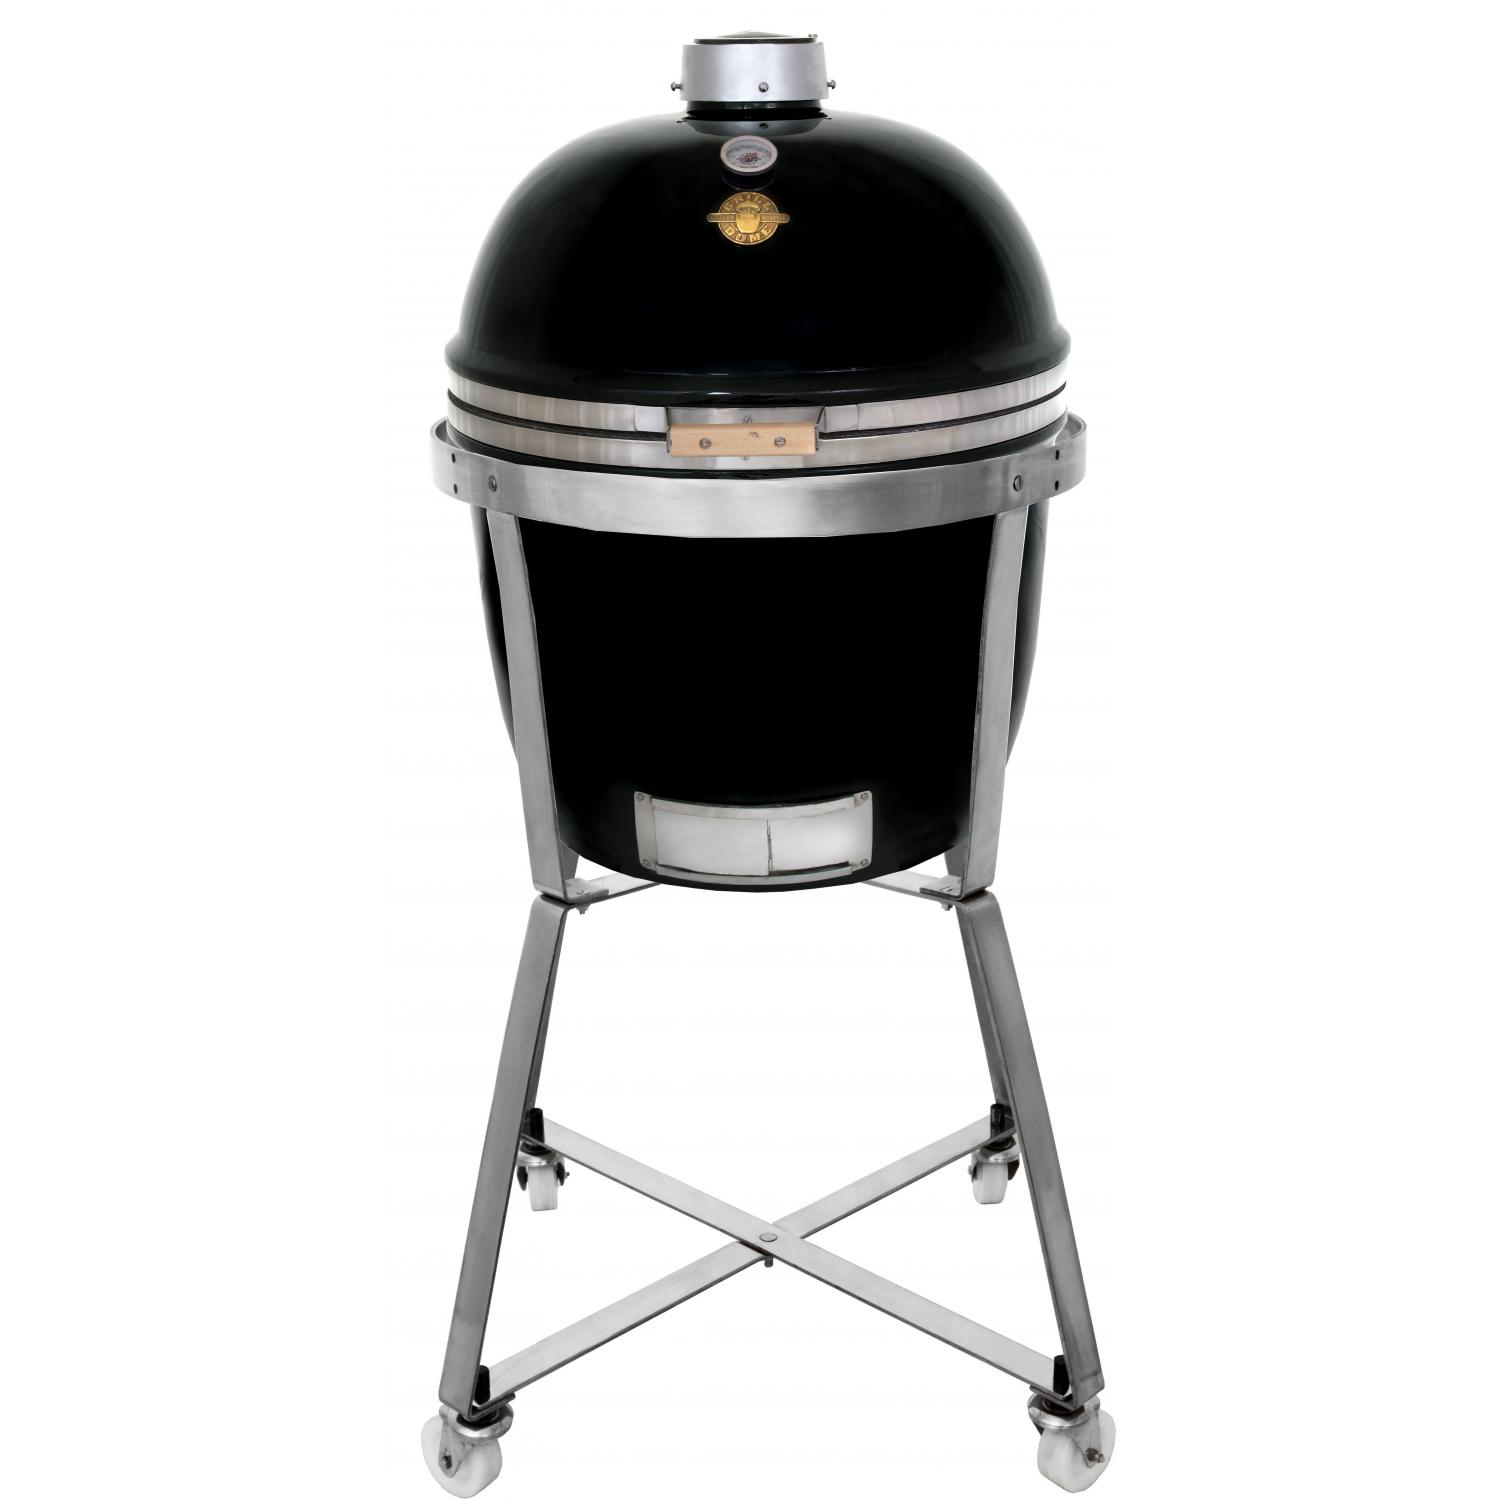 Grill Dome Infinity Series Large Kamado Grill On Dome Mobile - Black, Discount ID GDL-BK SS Mobile